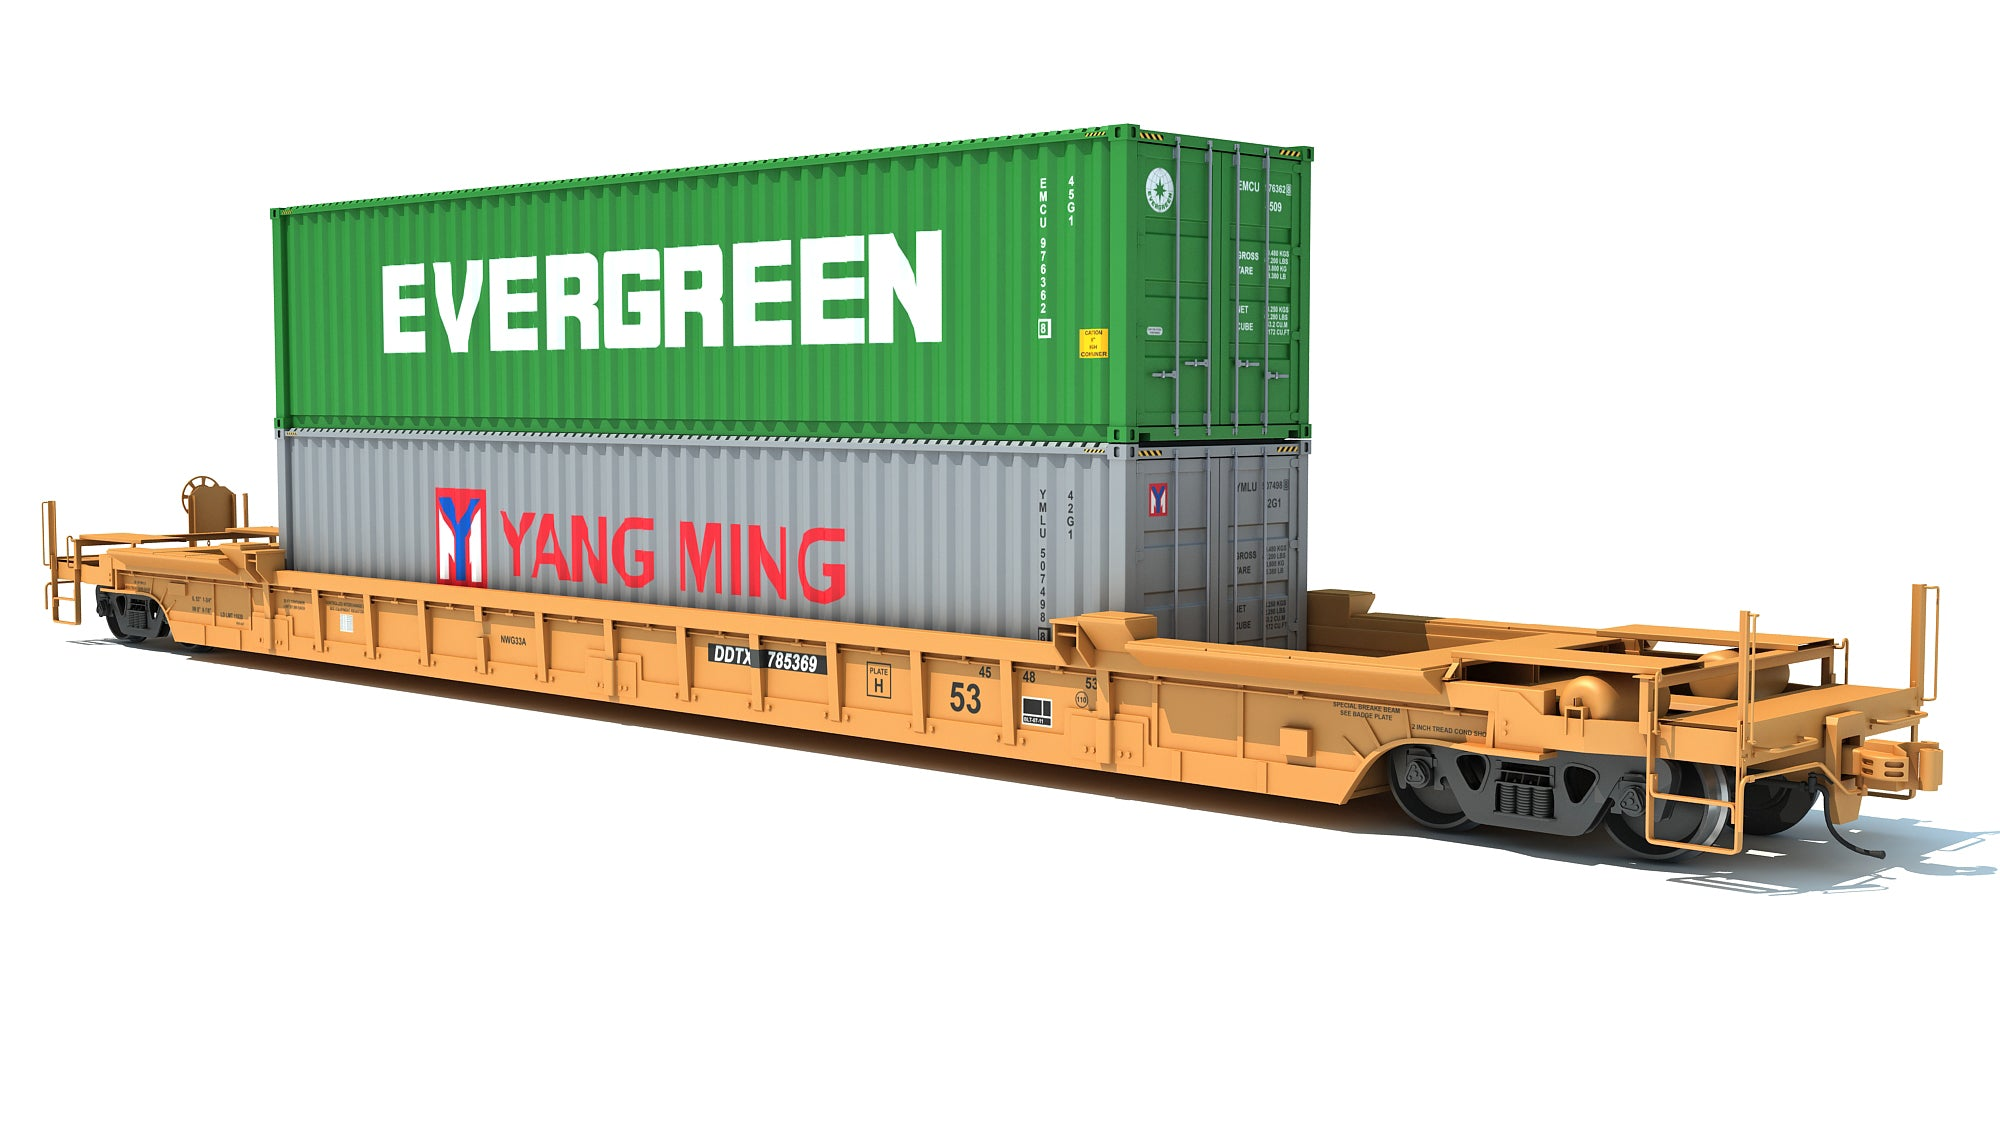 Train Car with Containers